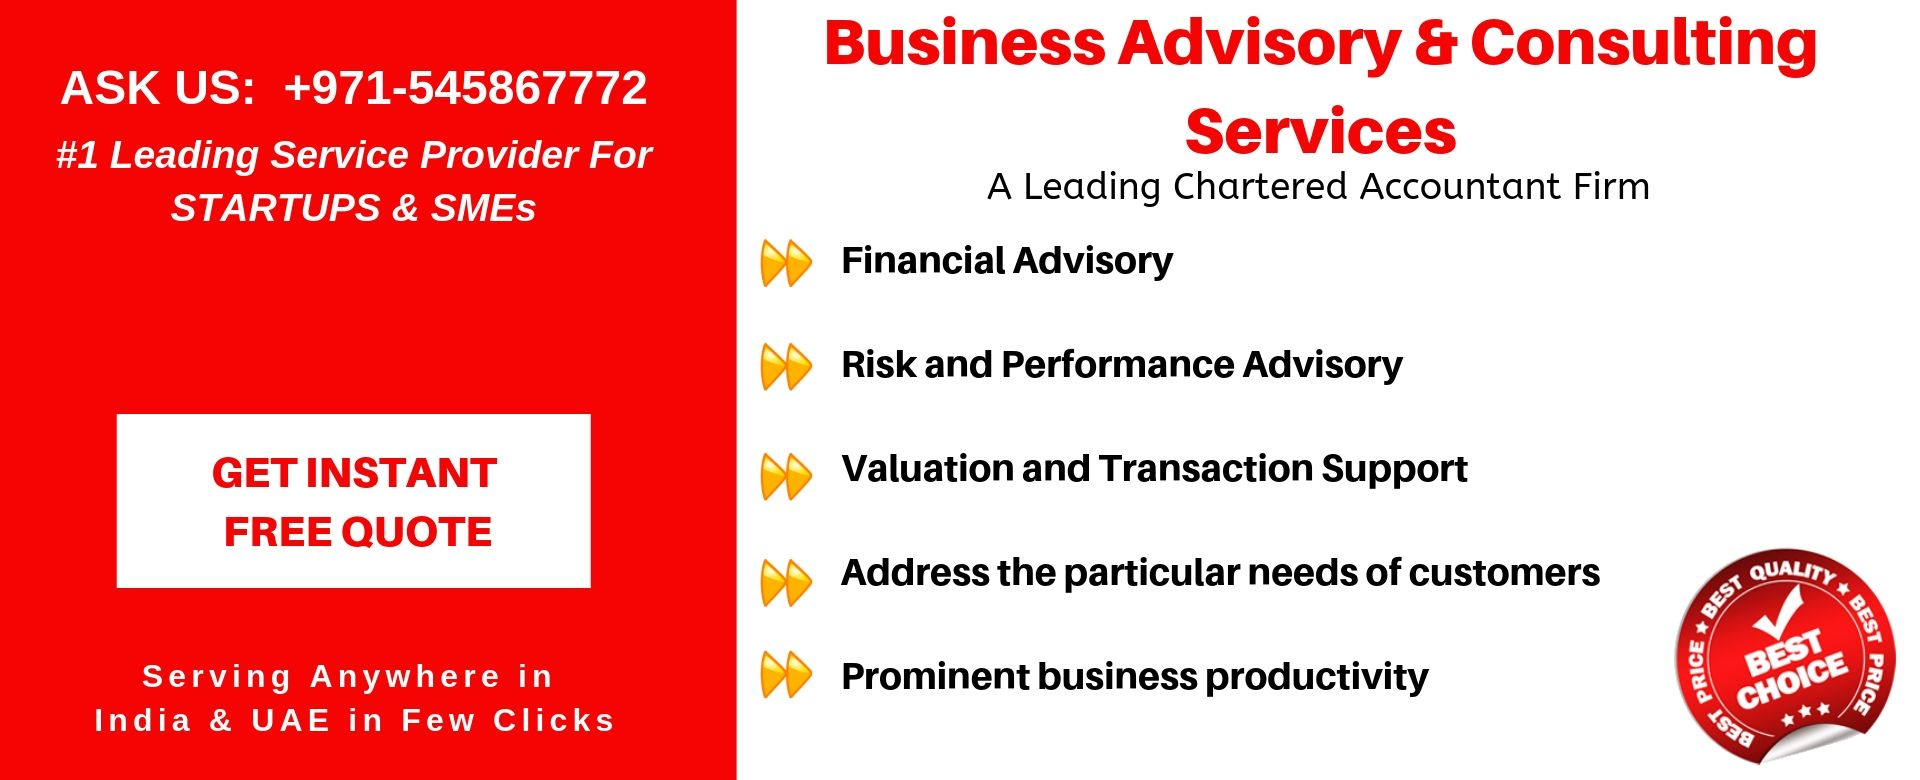 business advisory consulting services in uae